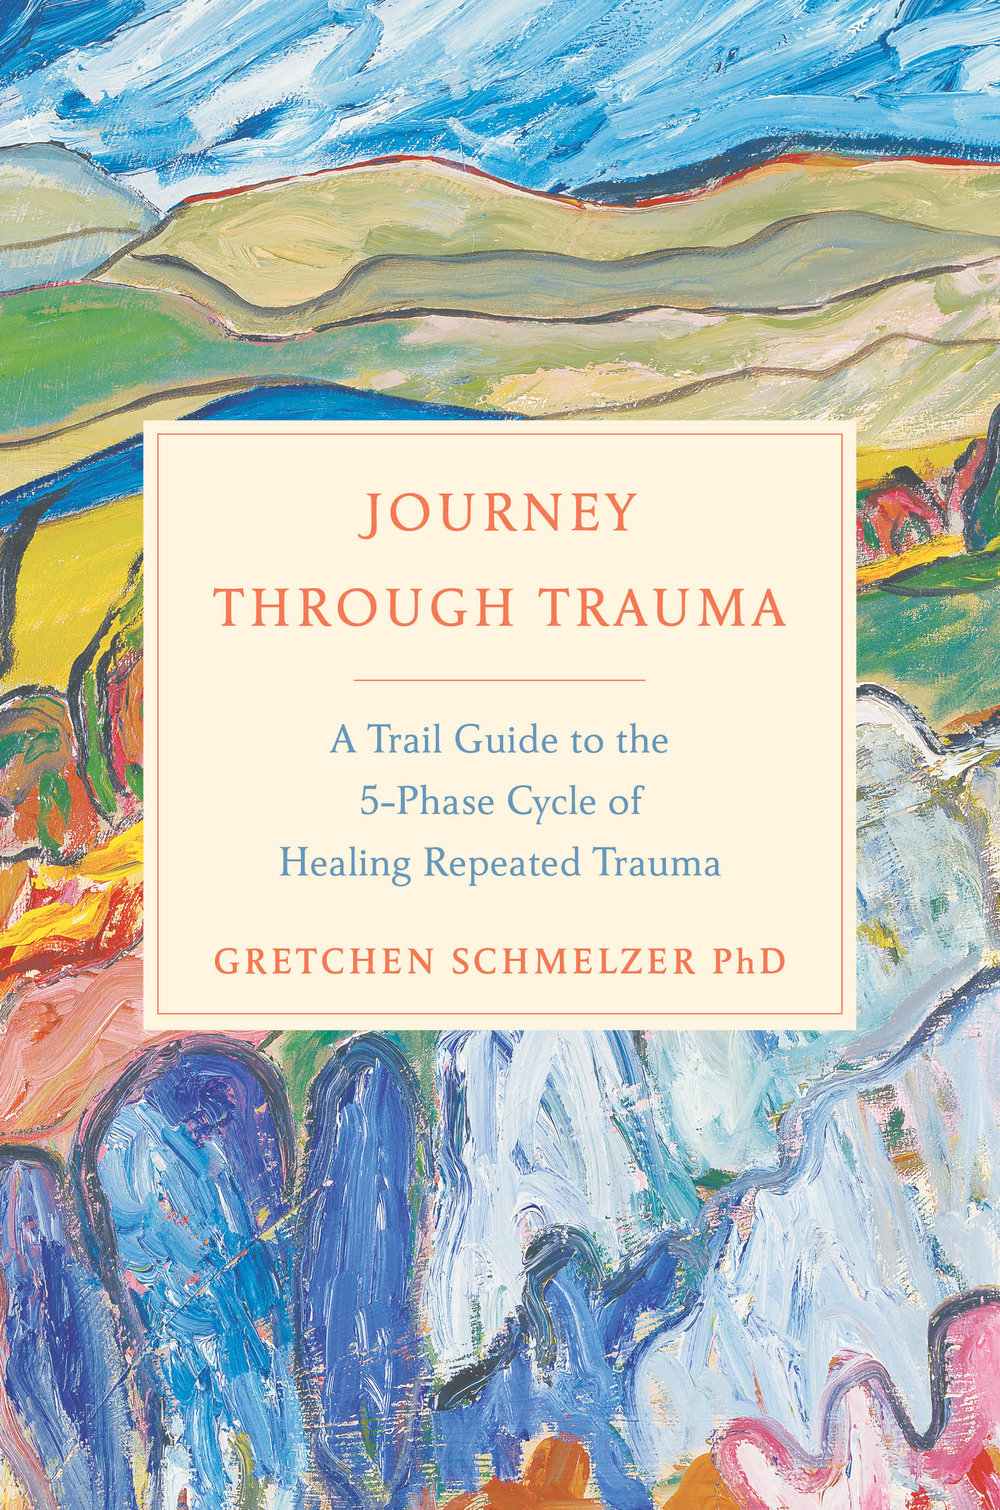 JourneyThroughTrauma_design_r4 (2).jpg